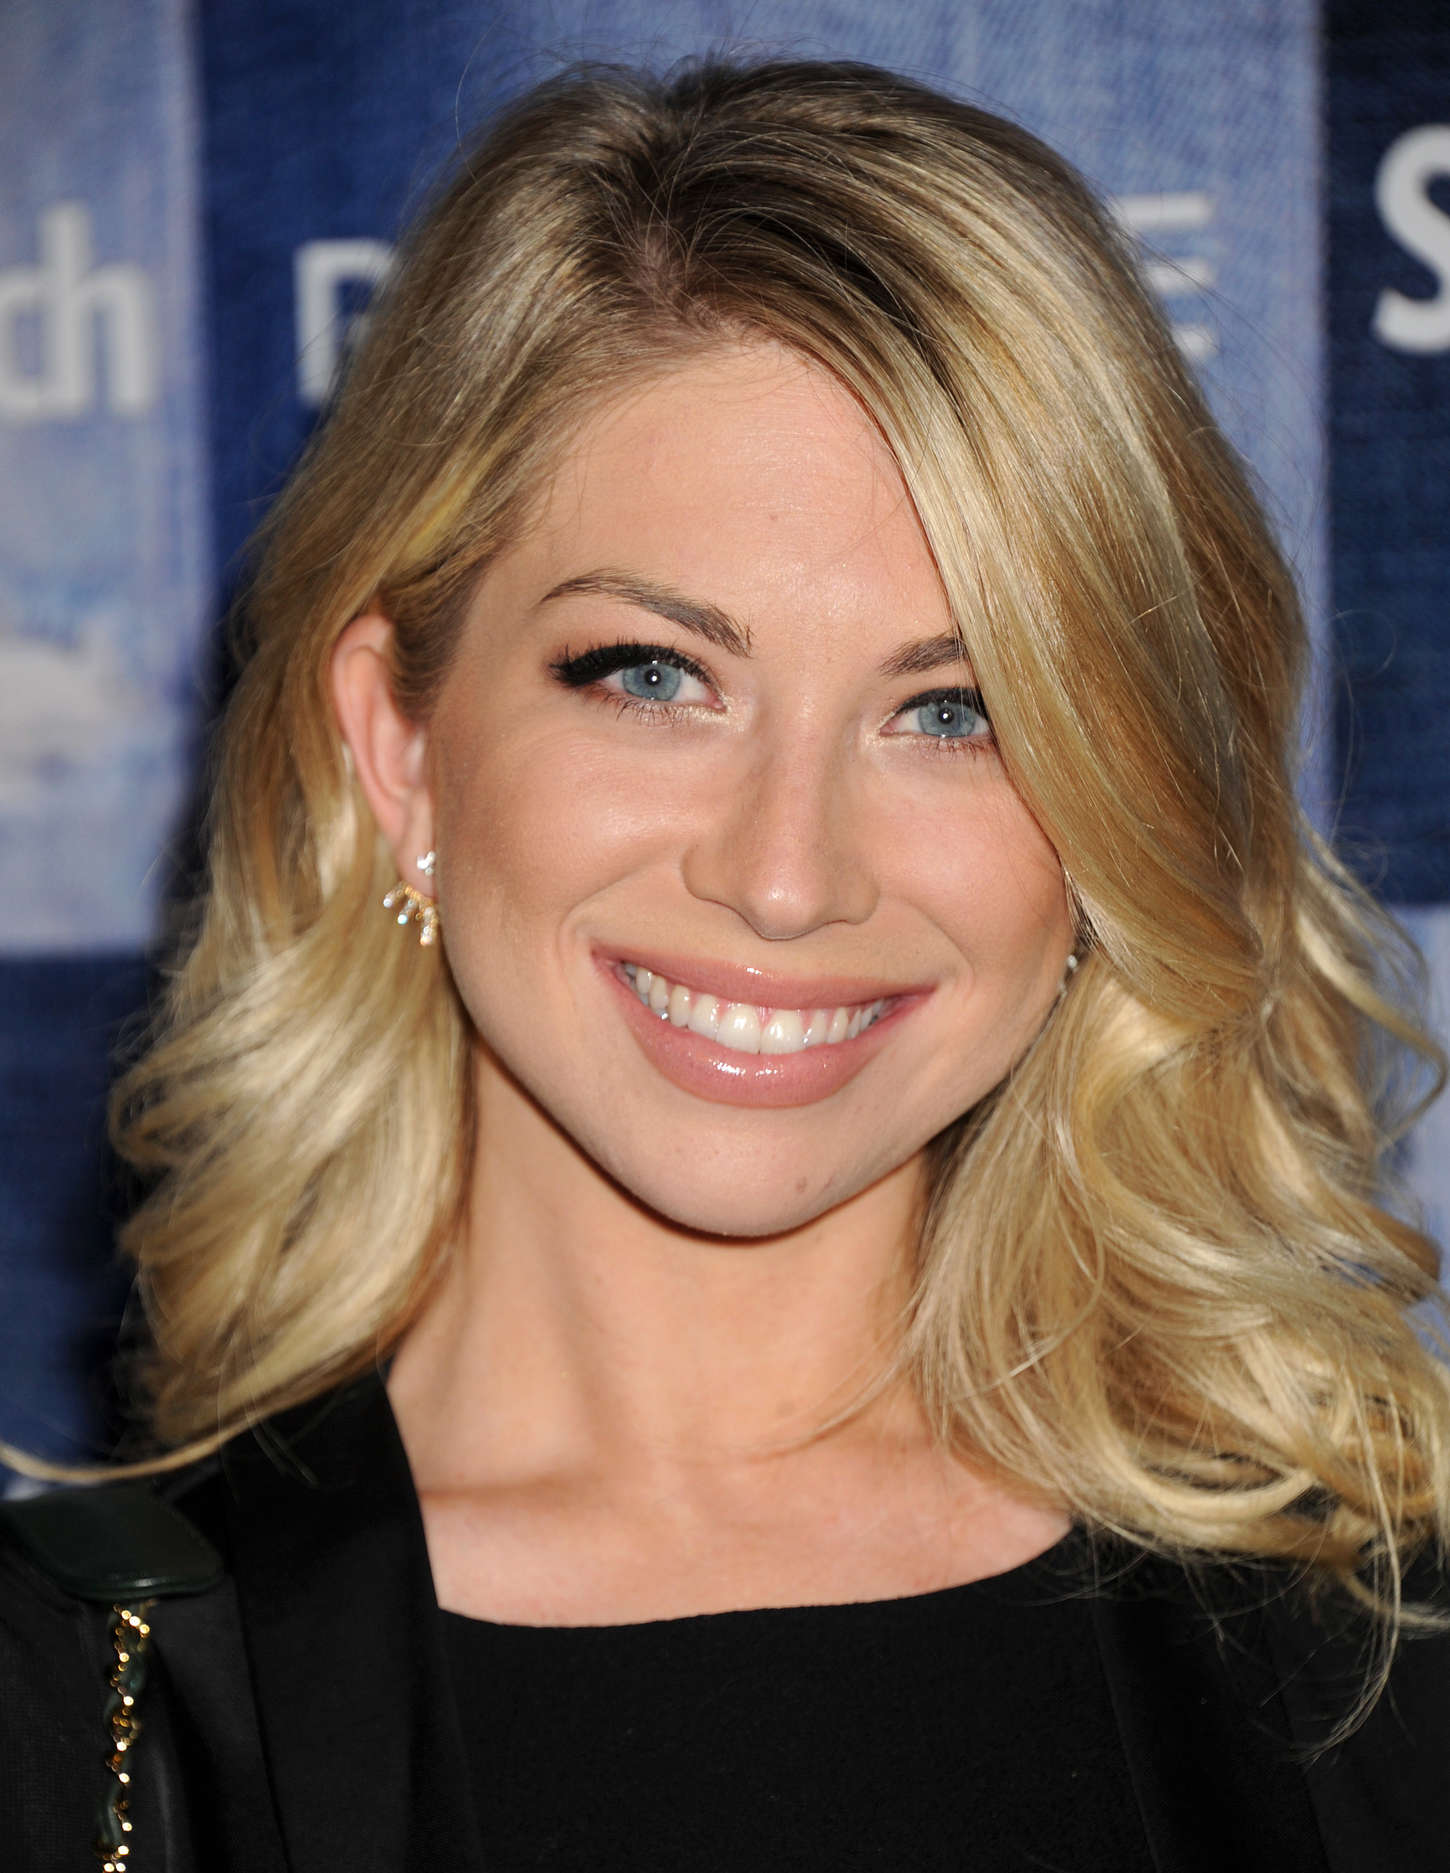 Stassi Schroeder People StyleWatch Annual Denim Party in Los Angeles